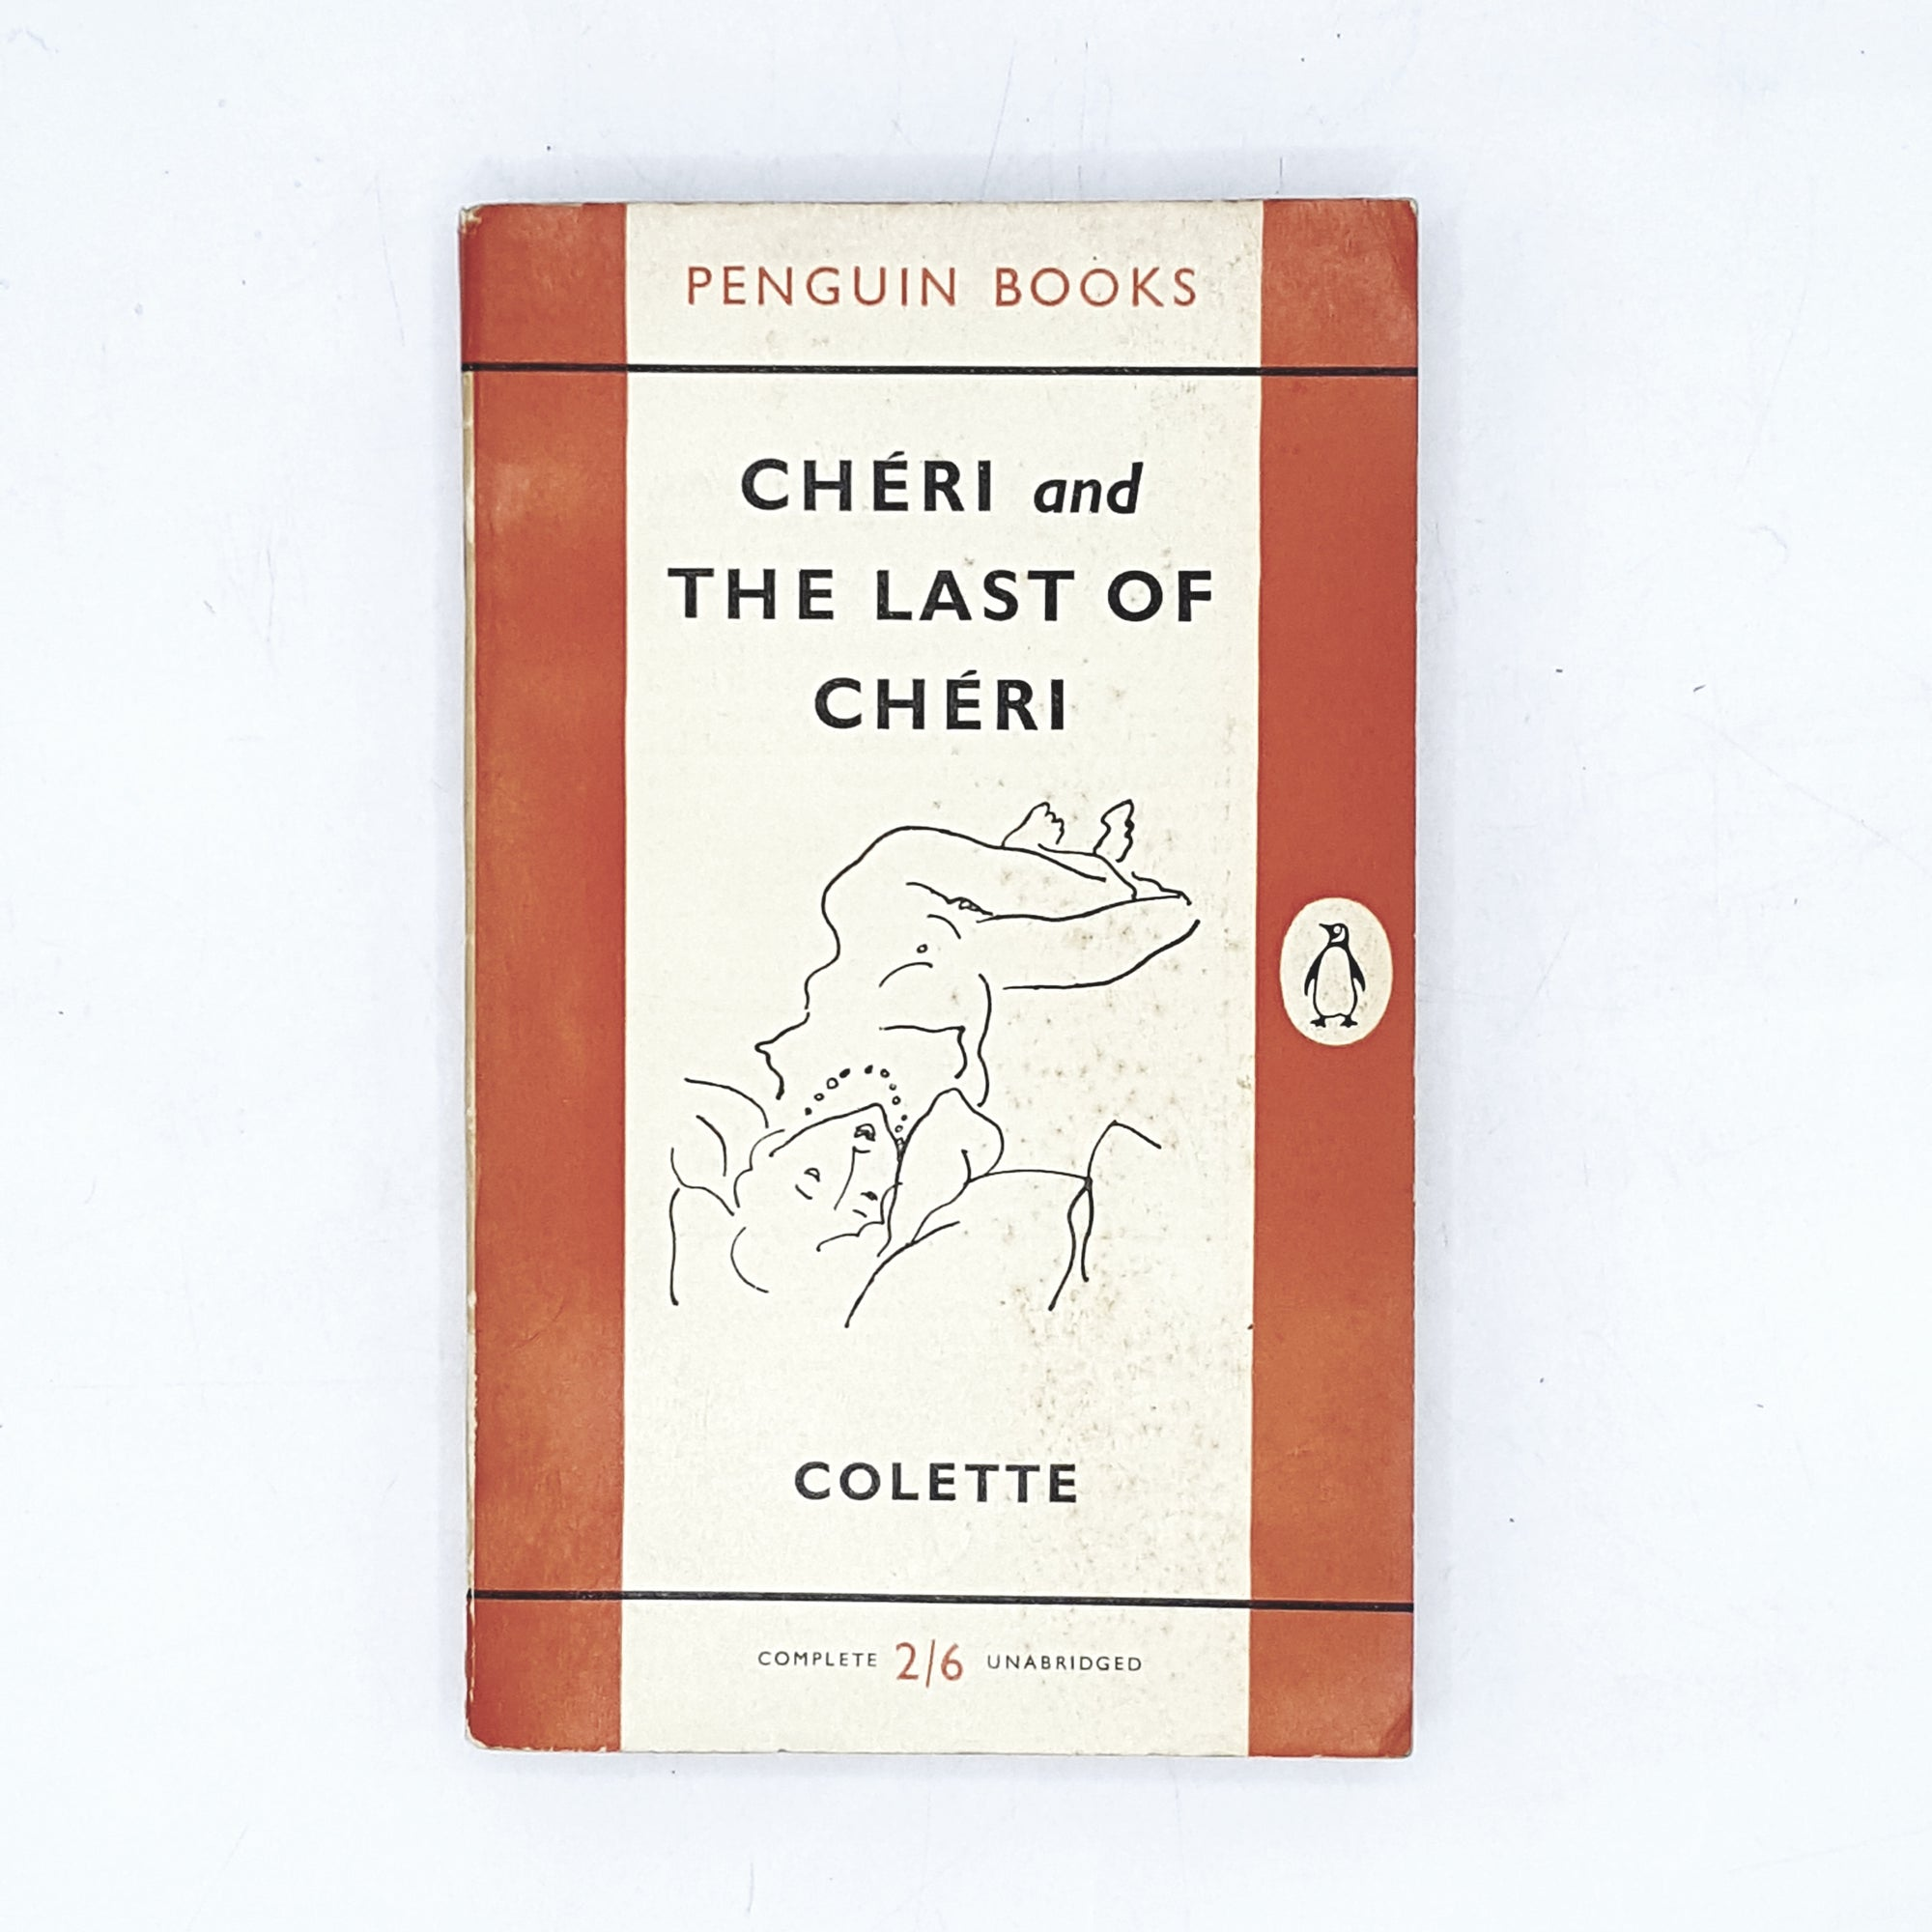 Colette's Chéri and the Last of Chéri 1957